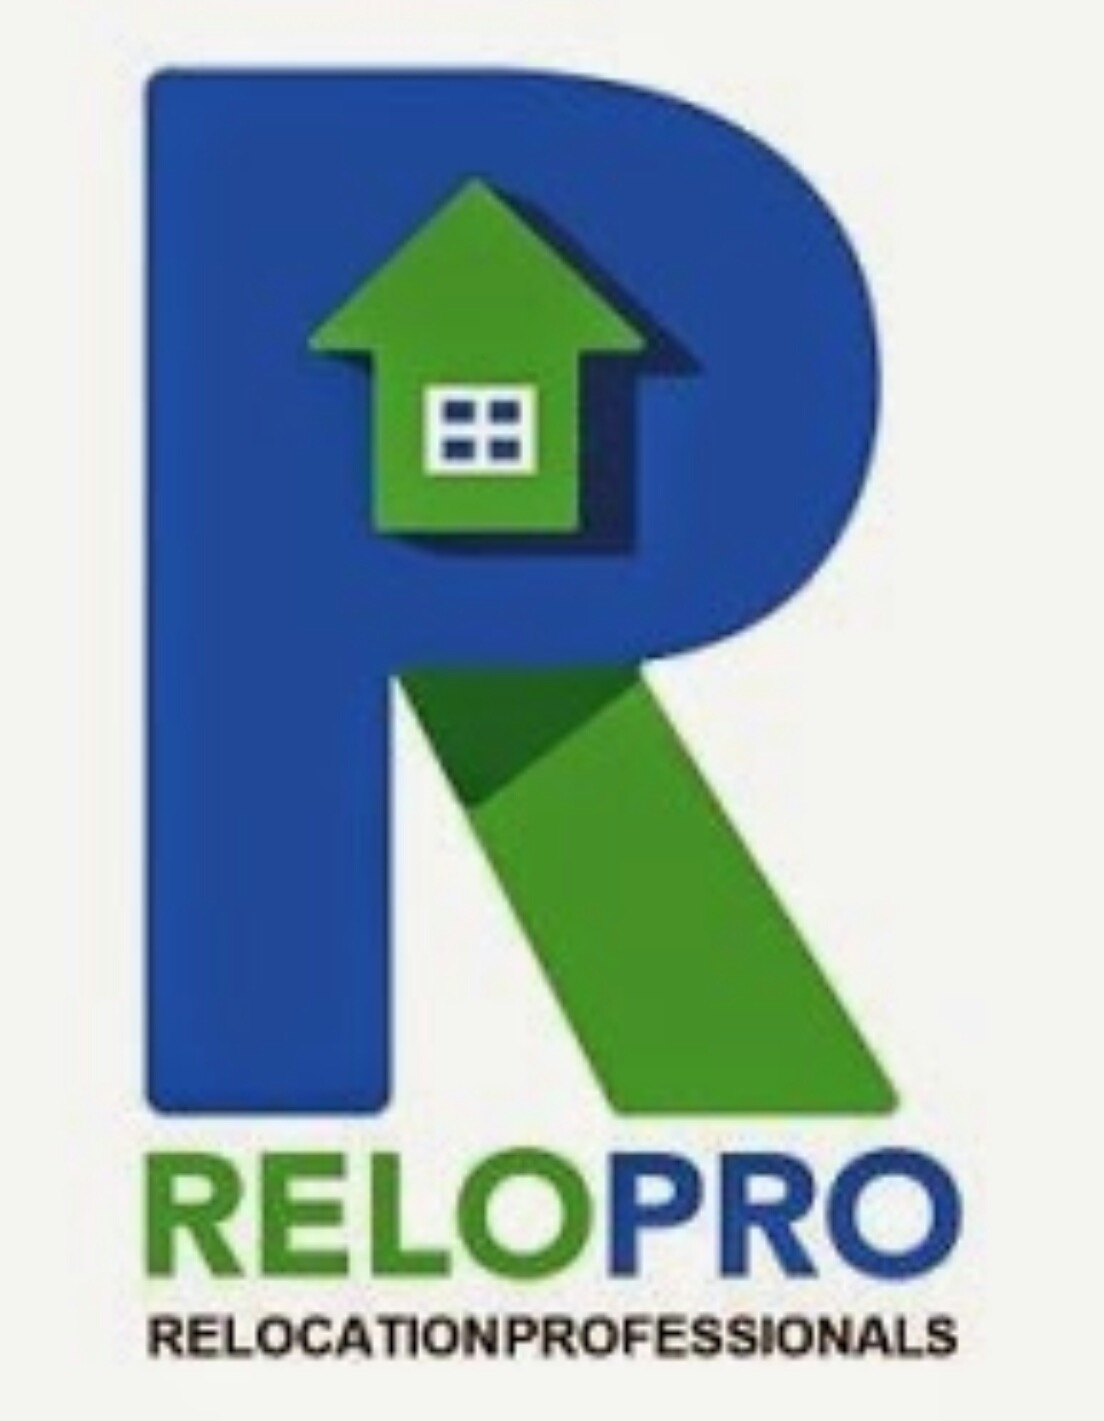 ReloPro